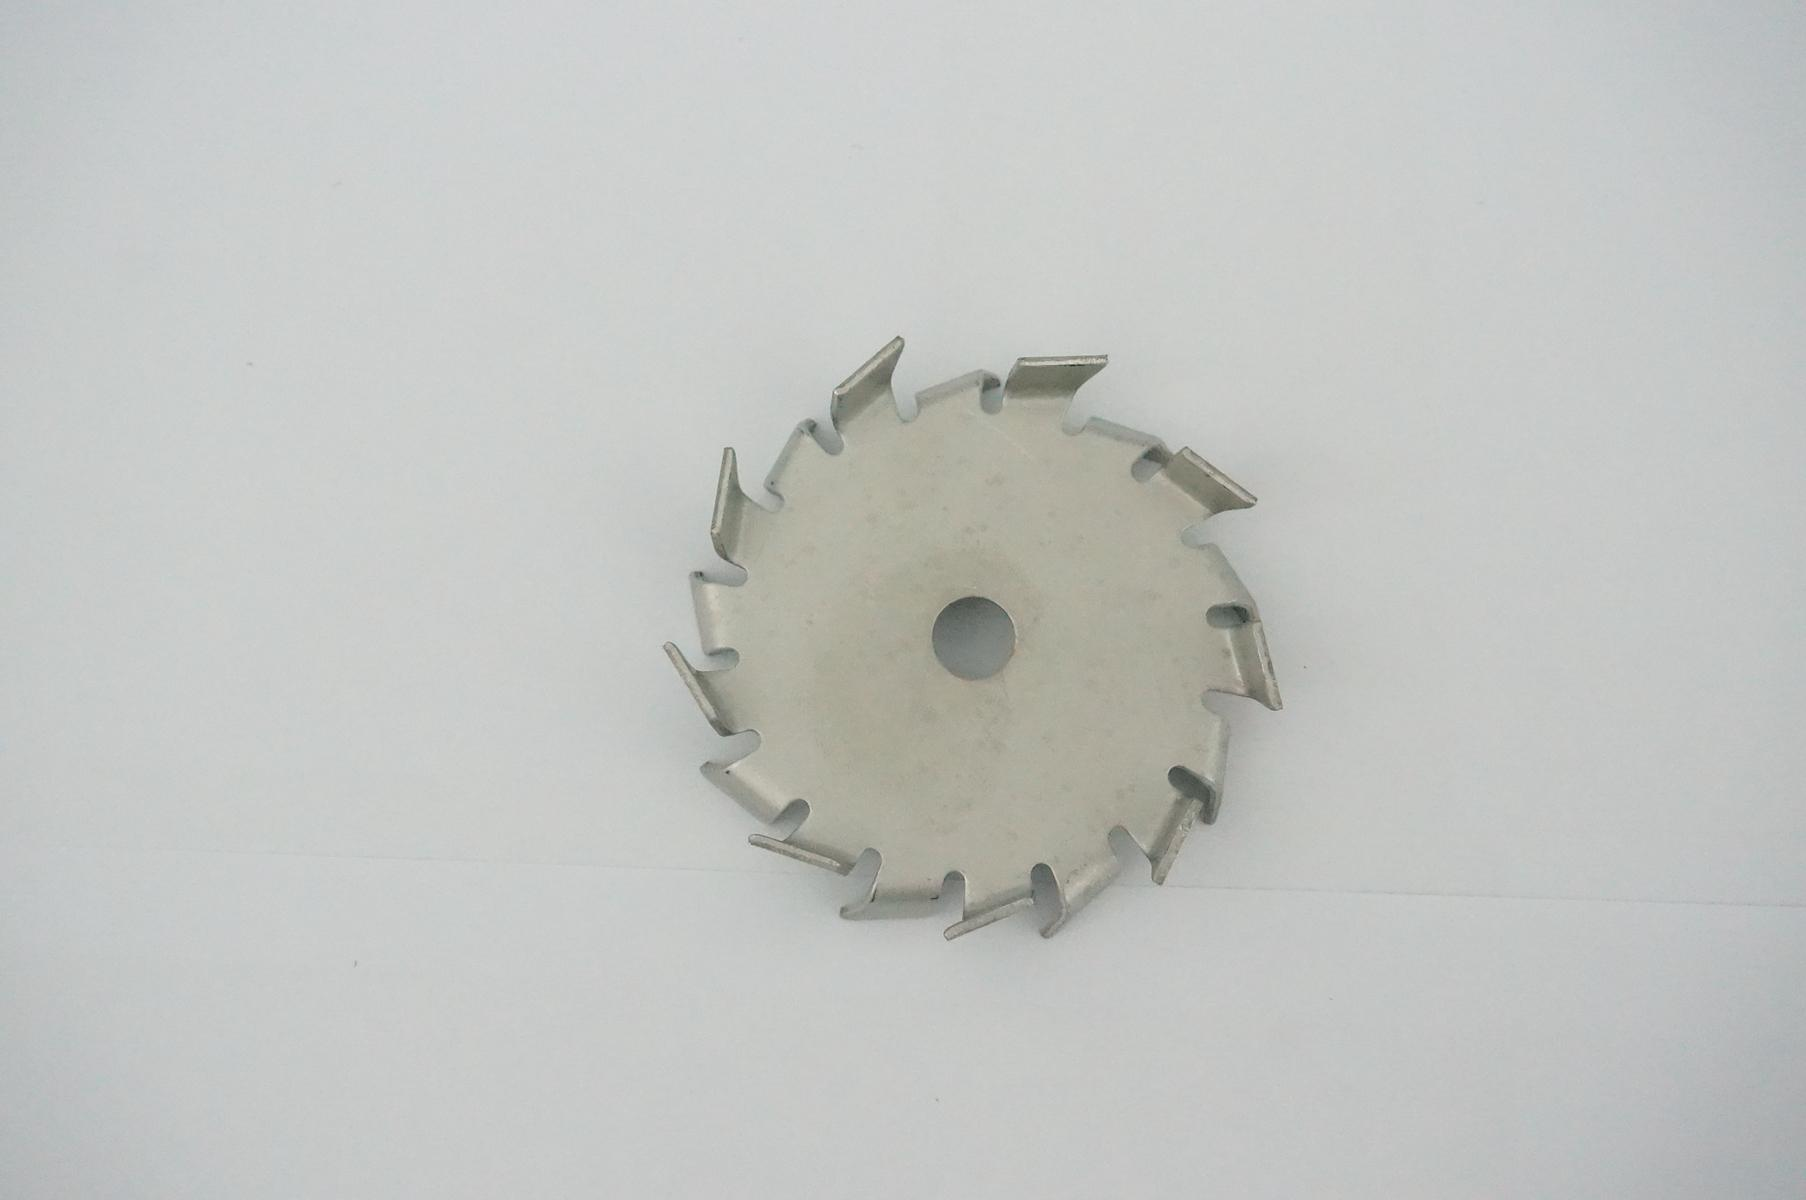 60mm Stainless Steel Stir Blade Impeller Tooth Type Dispersed Disc Gear